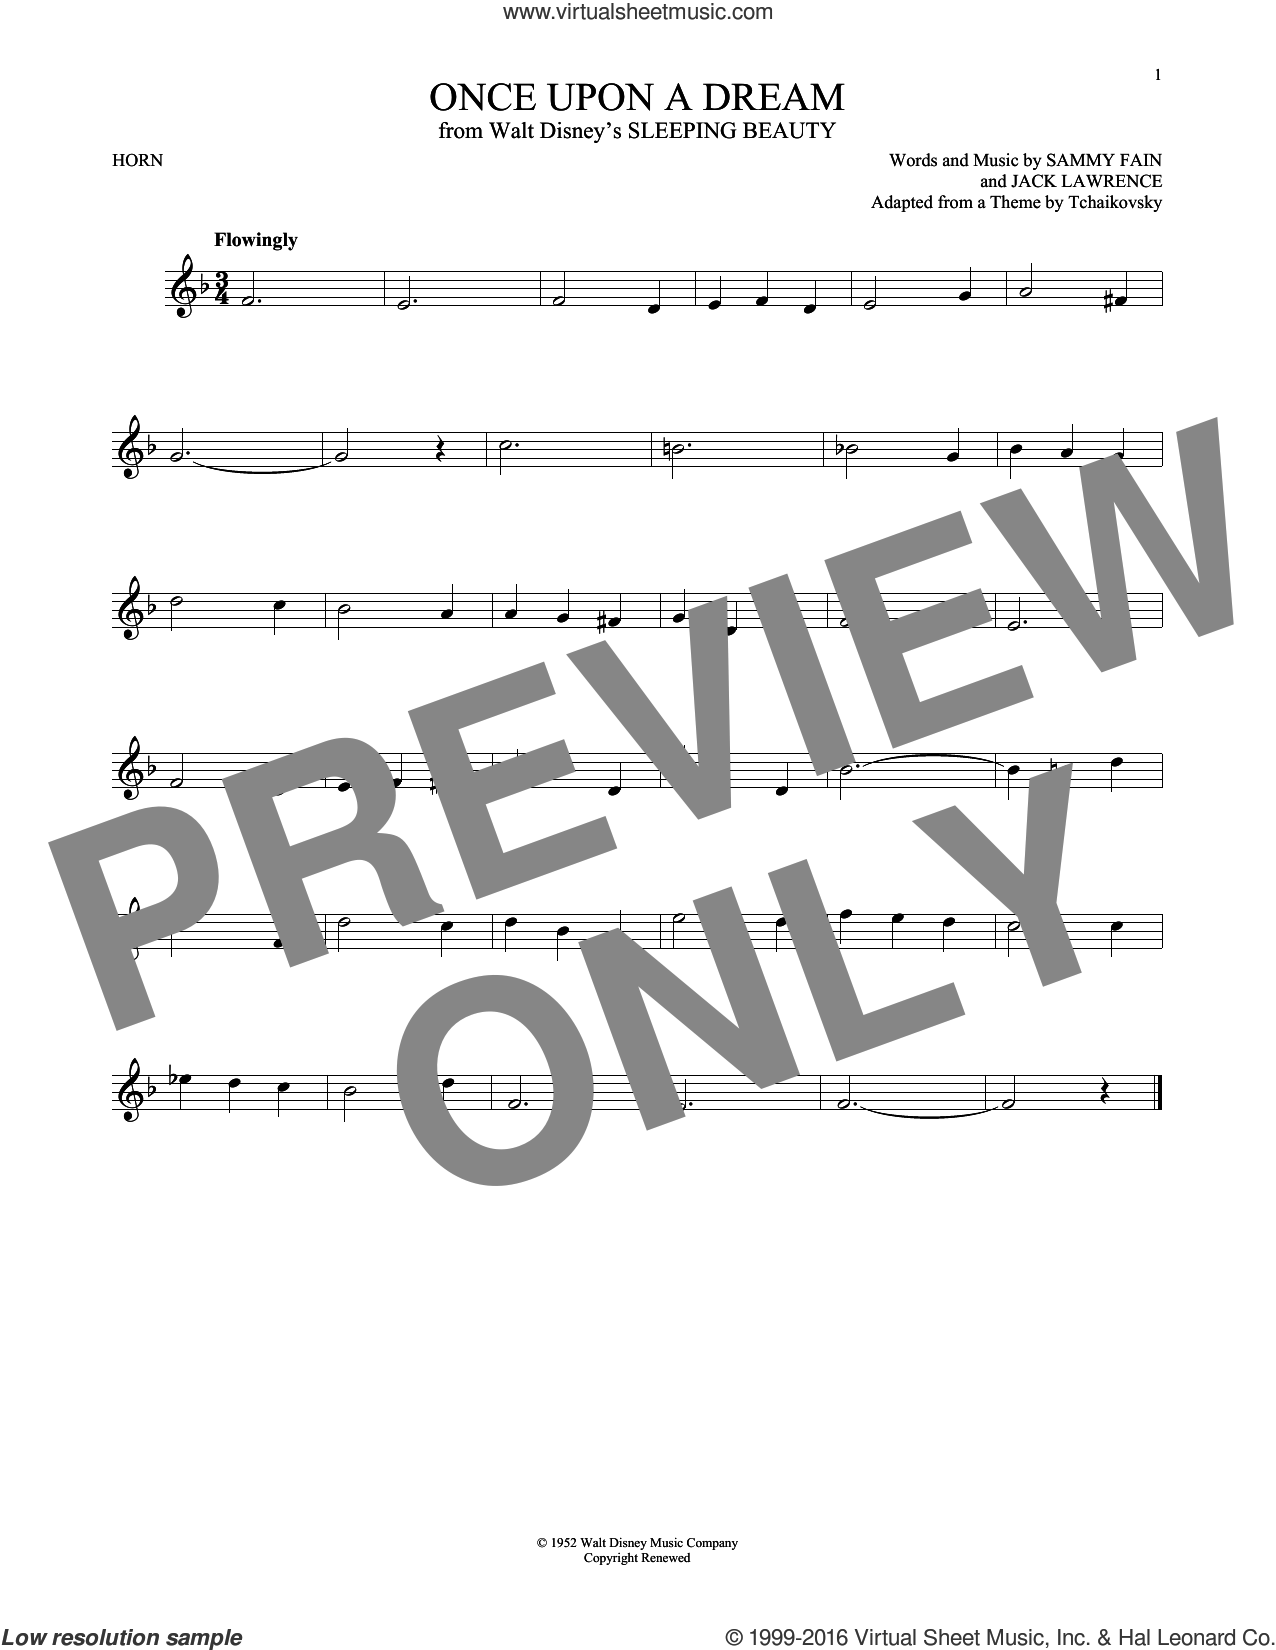 Once Upon A Dream sheet music for horn solo by Sammy Fain and Jack Lawrence, intermediate skill level